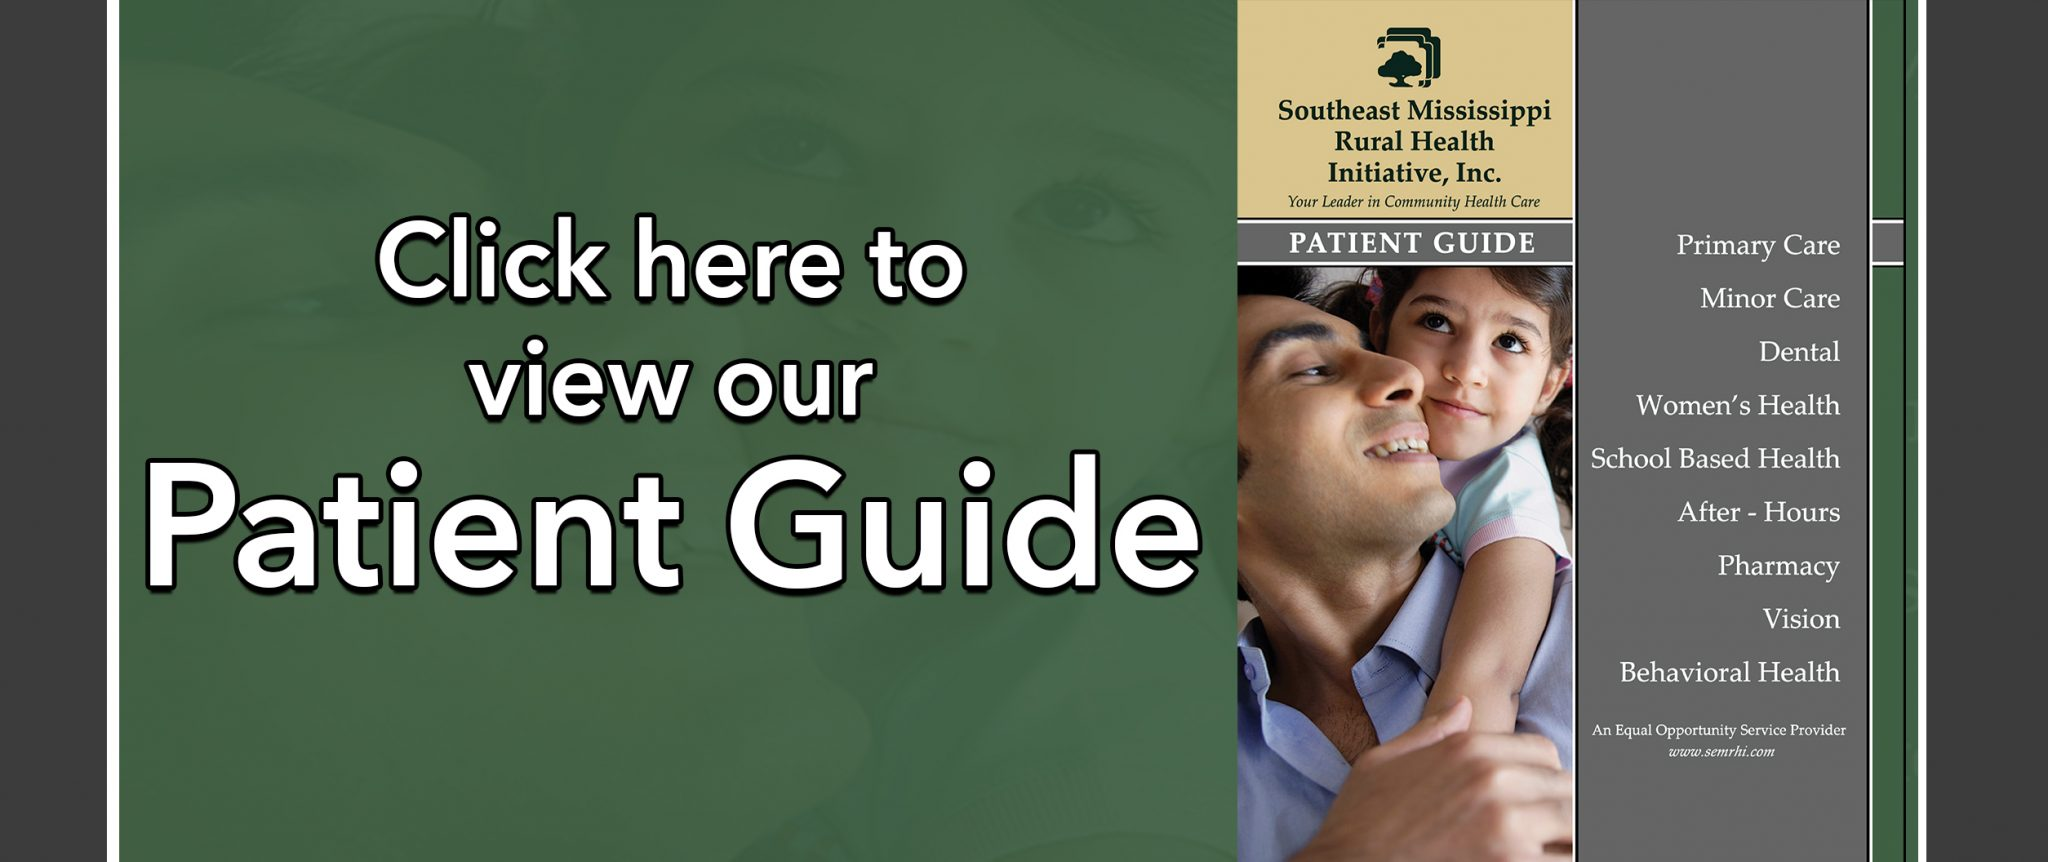 Patient Guide web banner